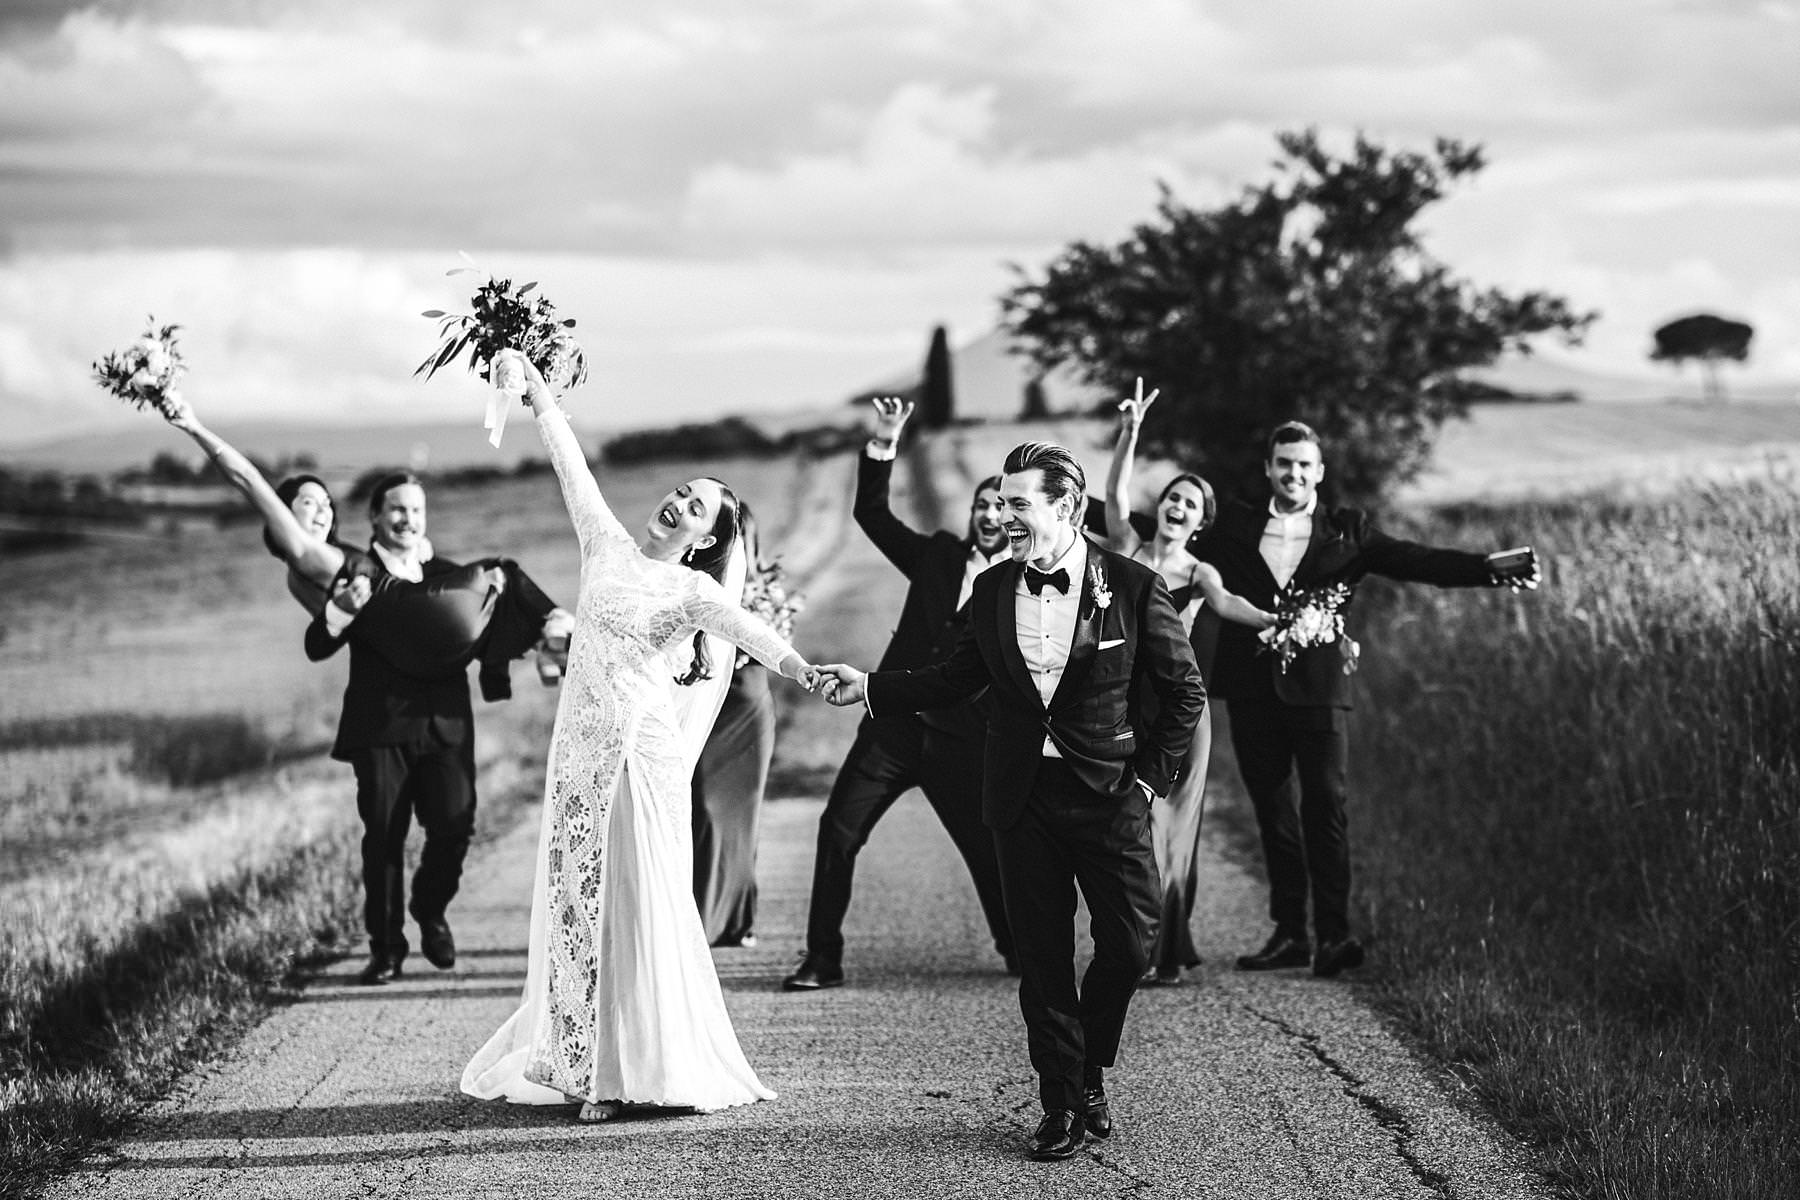 Destination wedding in Umbria at Villa l'Antica Posta, elegance and fun in a nutshell. Amazing bridal party wedding photo in the countryside of Umbria with corn field as the background